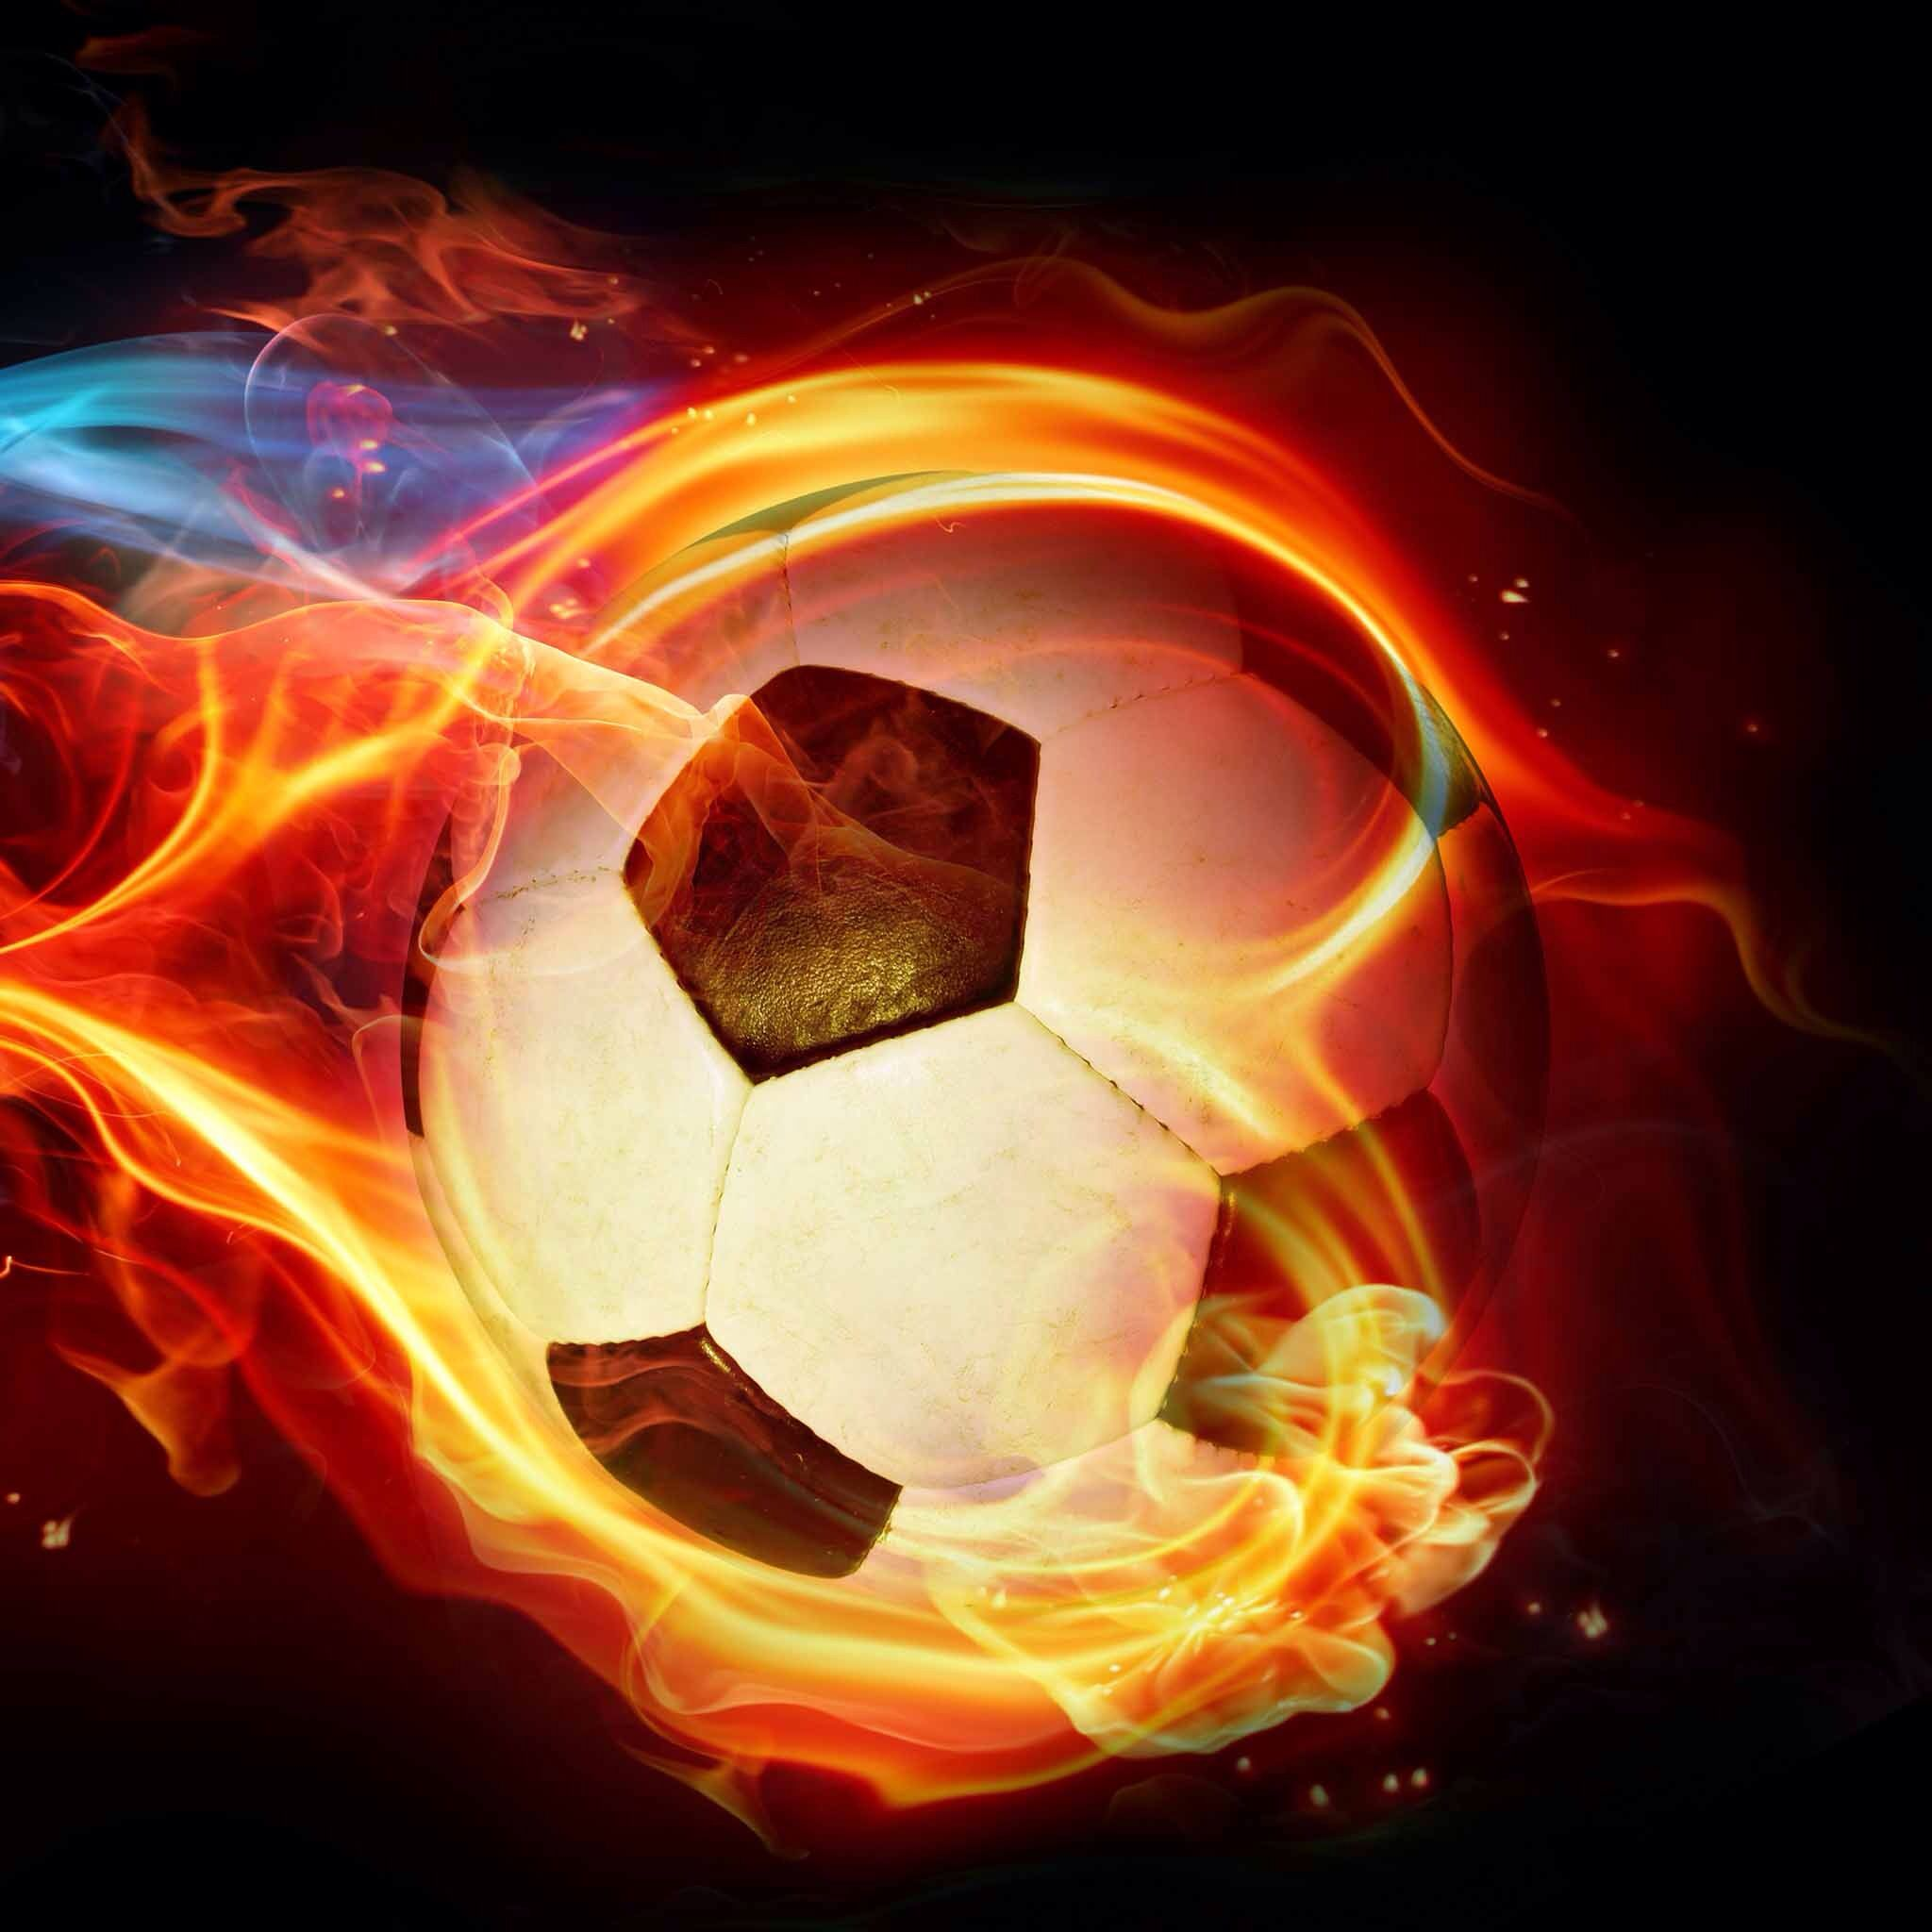 Got This One For My Friend Who Plays Soccer With Images Soccer Sports Wallpapers